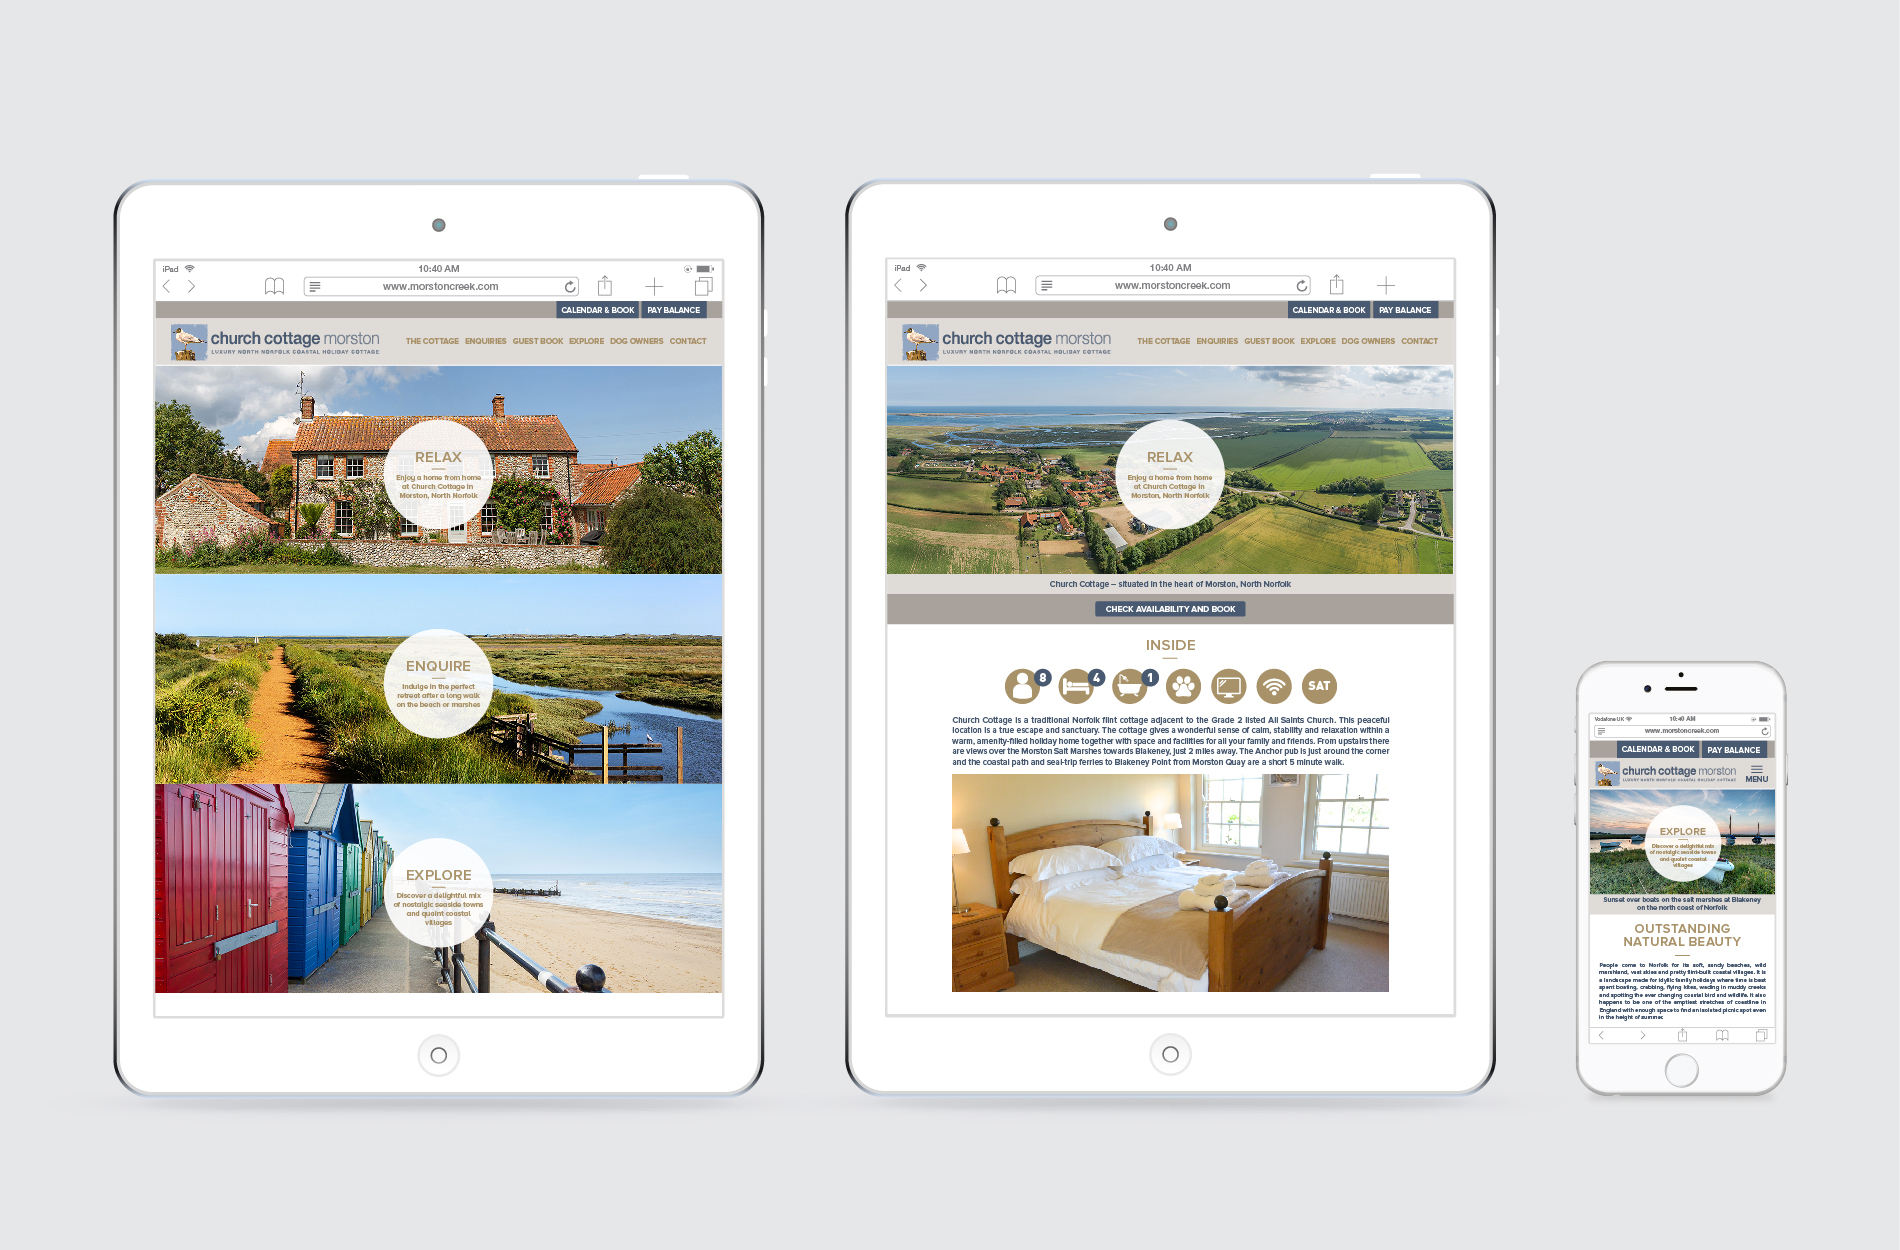 Content managed website for Morston Creek cottage rental property in Norfolk